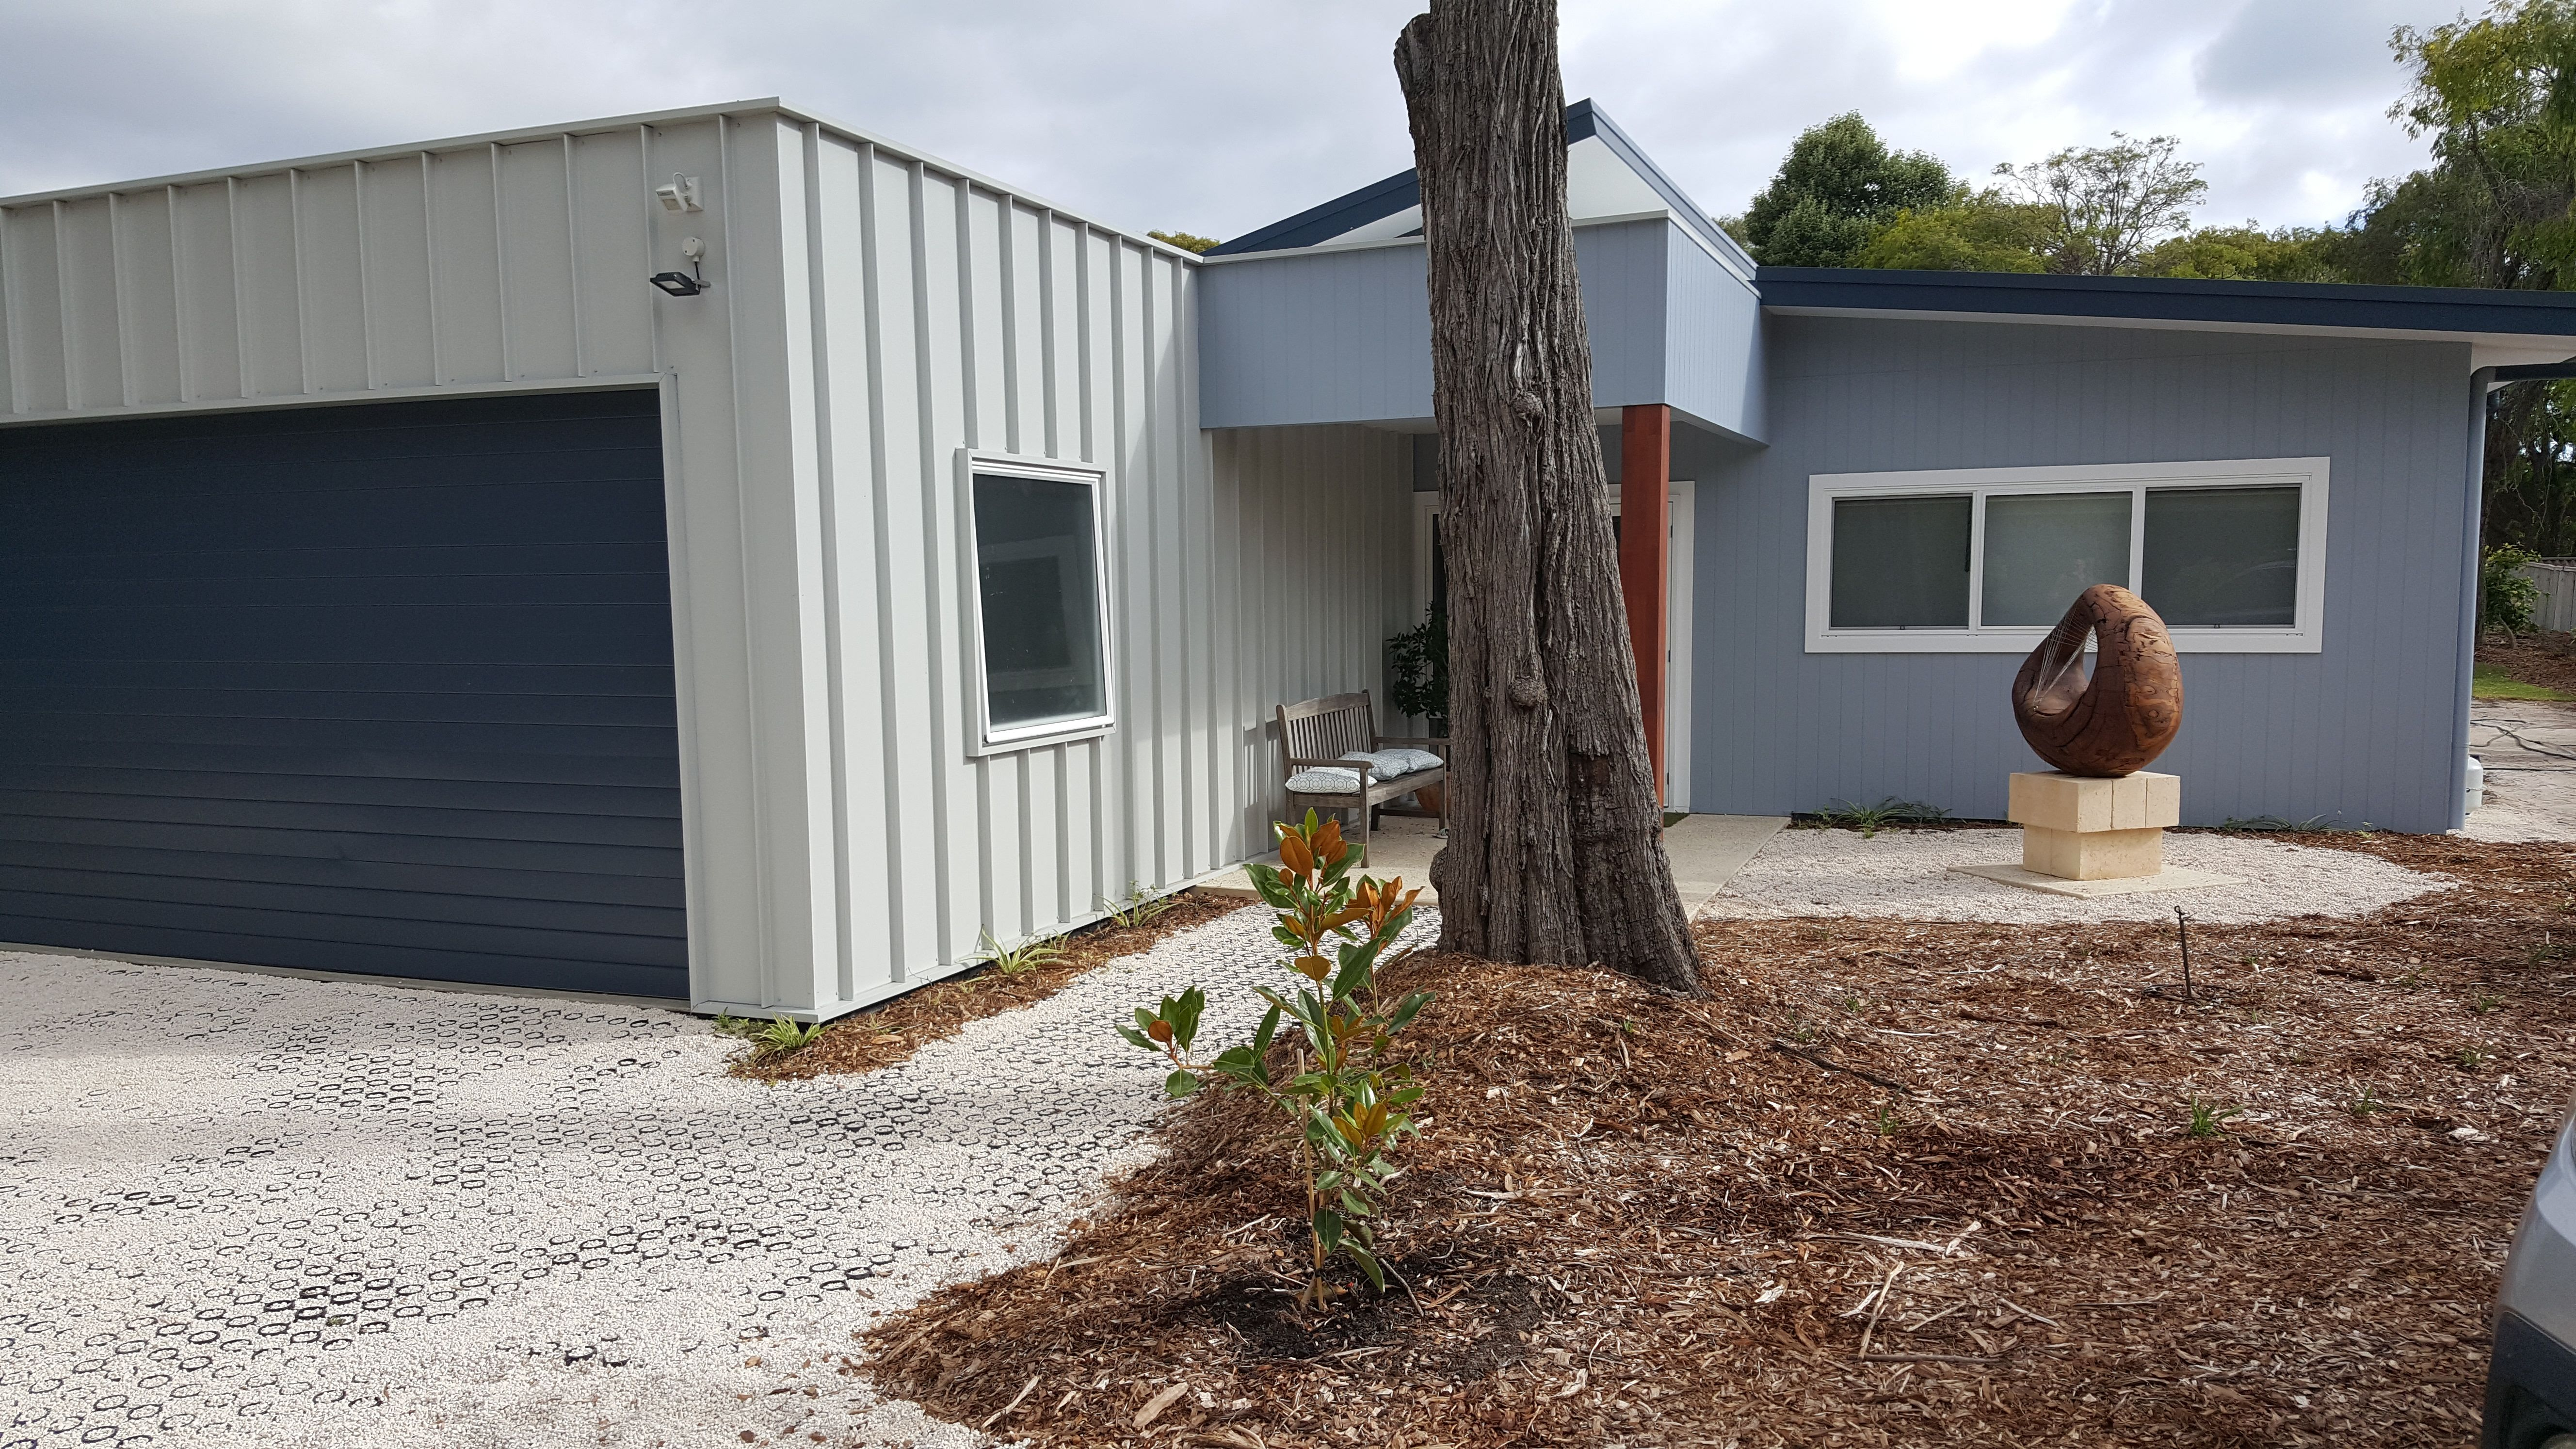 Garage Cladding In Matrix Colorbond In Shale Grey With Deep Ocean Blue Colorbond Sectional Garage Door Hardy A Sectional Garage Doors House Wall Garage Doors